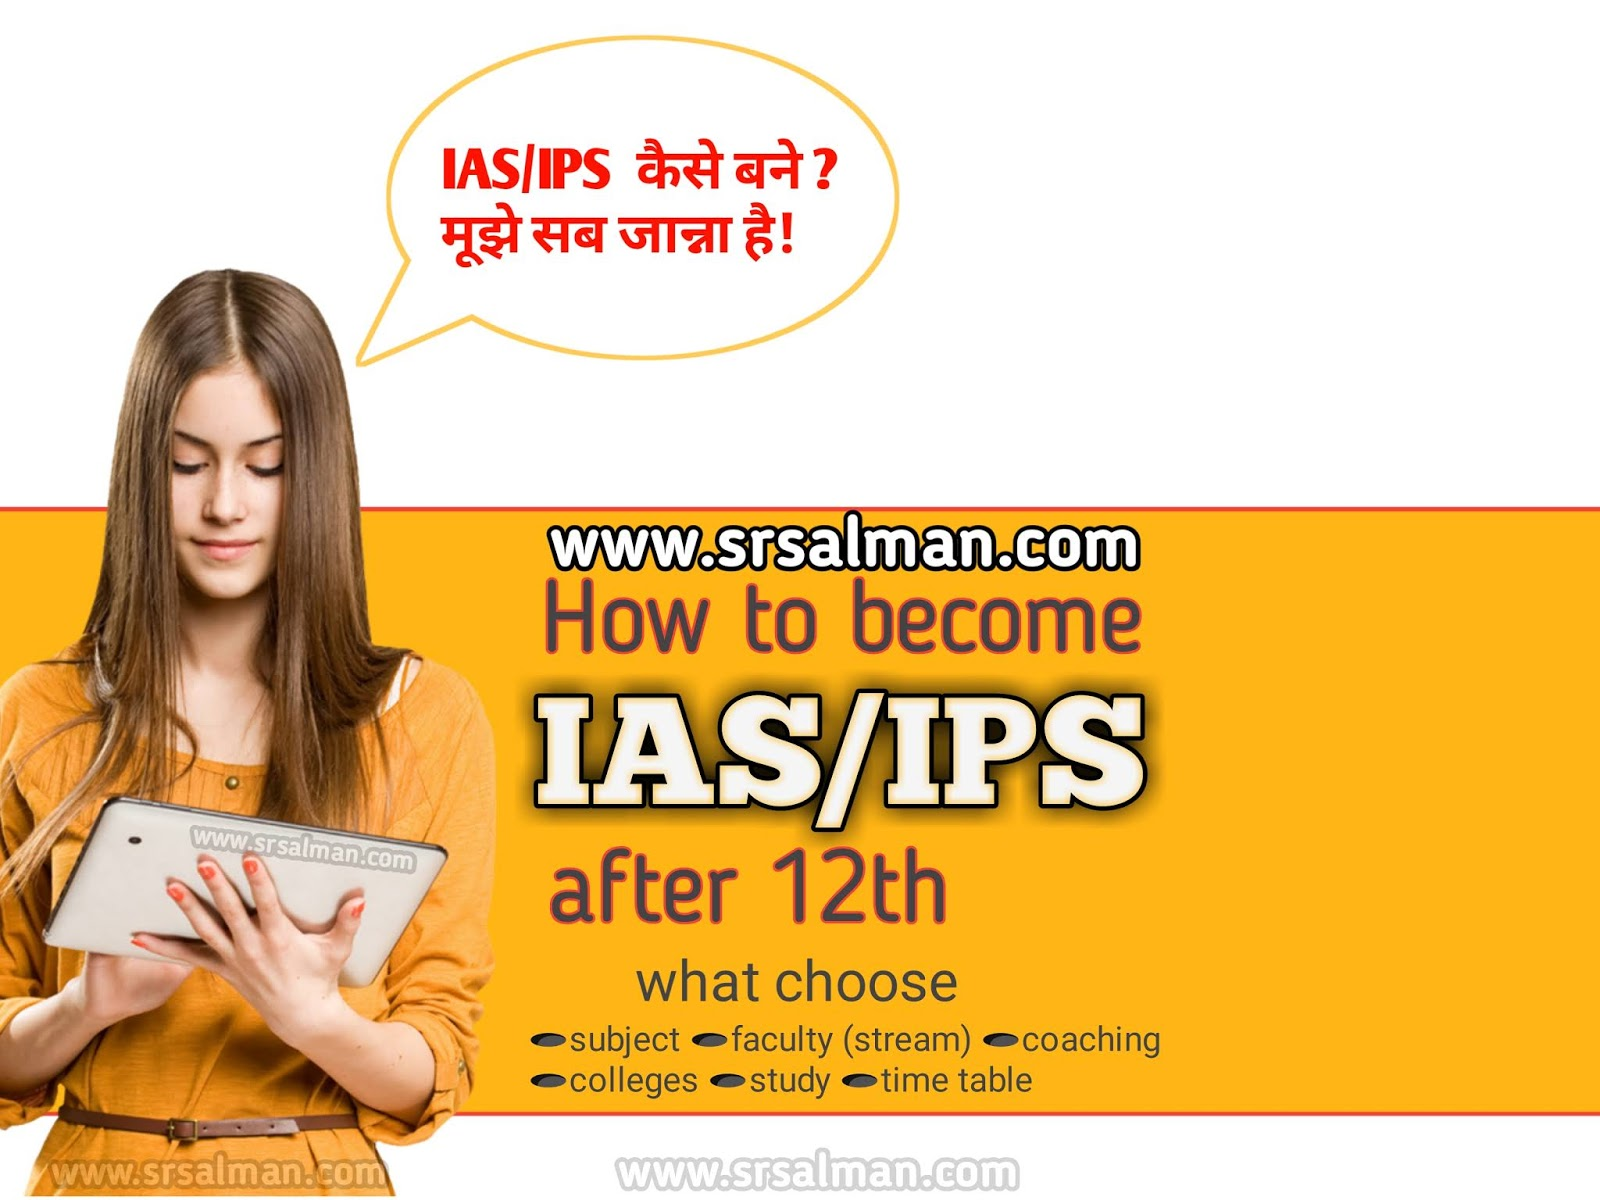 how to become ias/ips after 12th www.srsalman.com